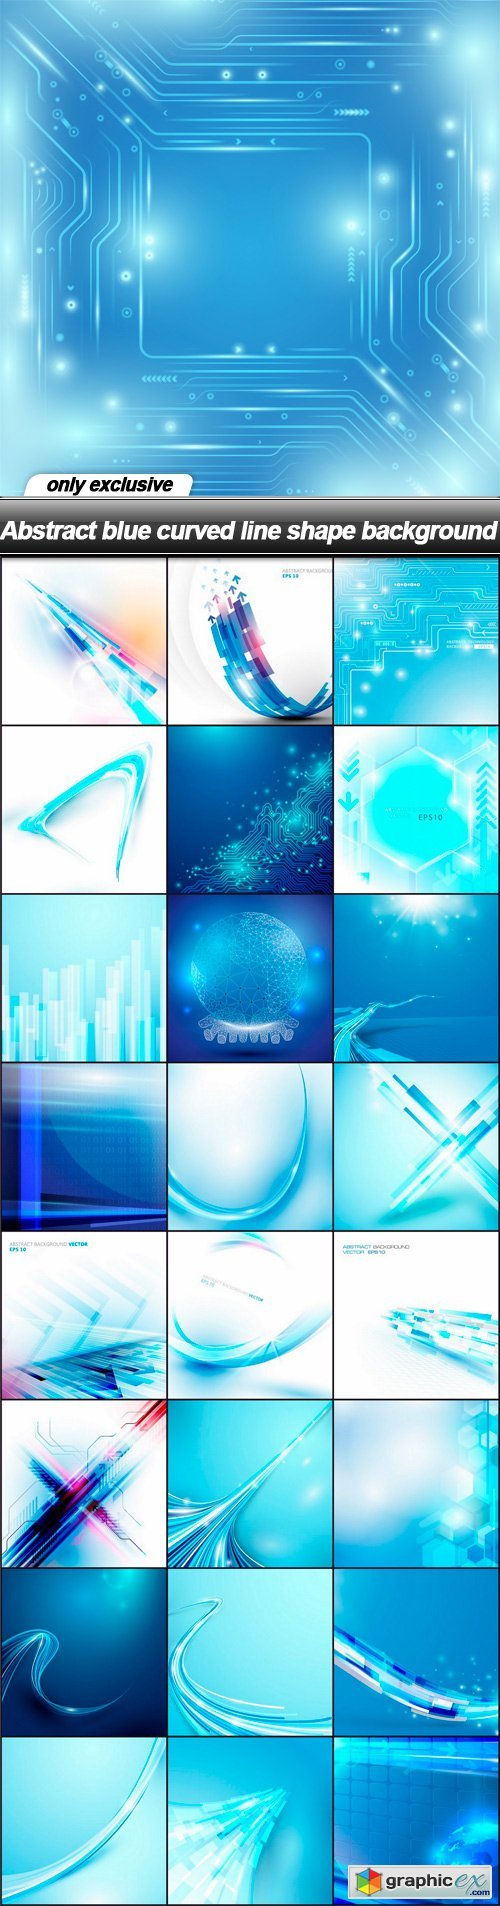 Abstract blue curved line shape background - 25 EPS